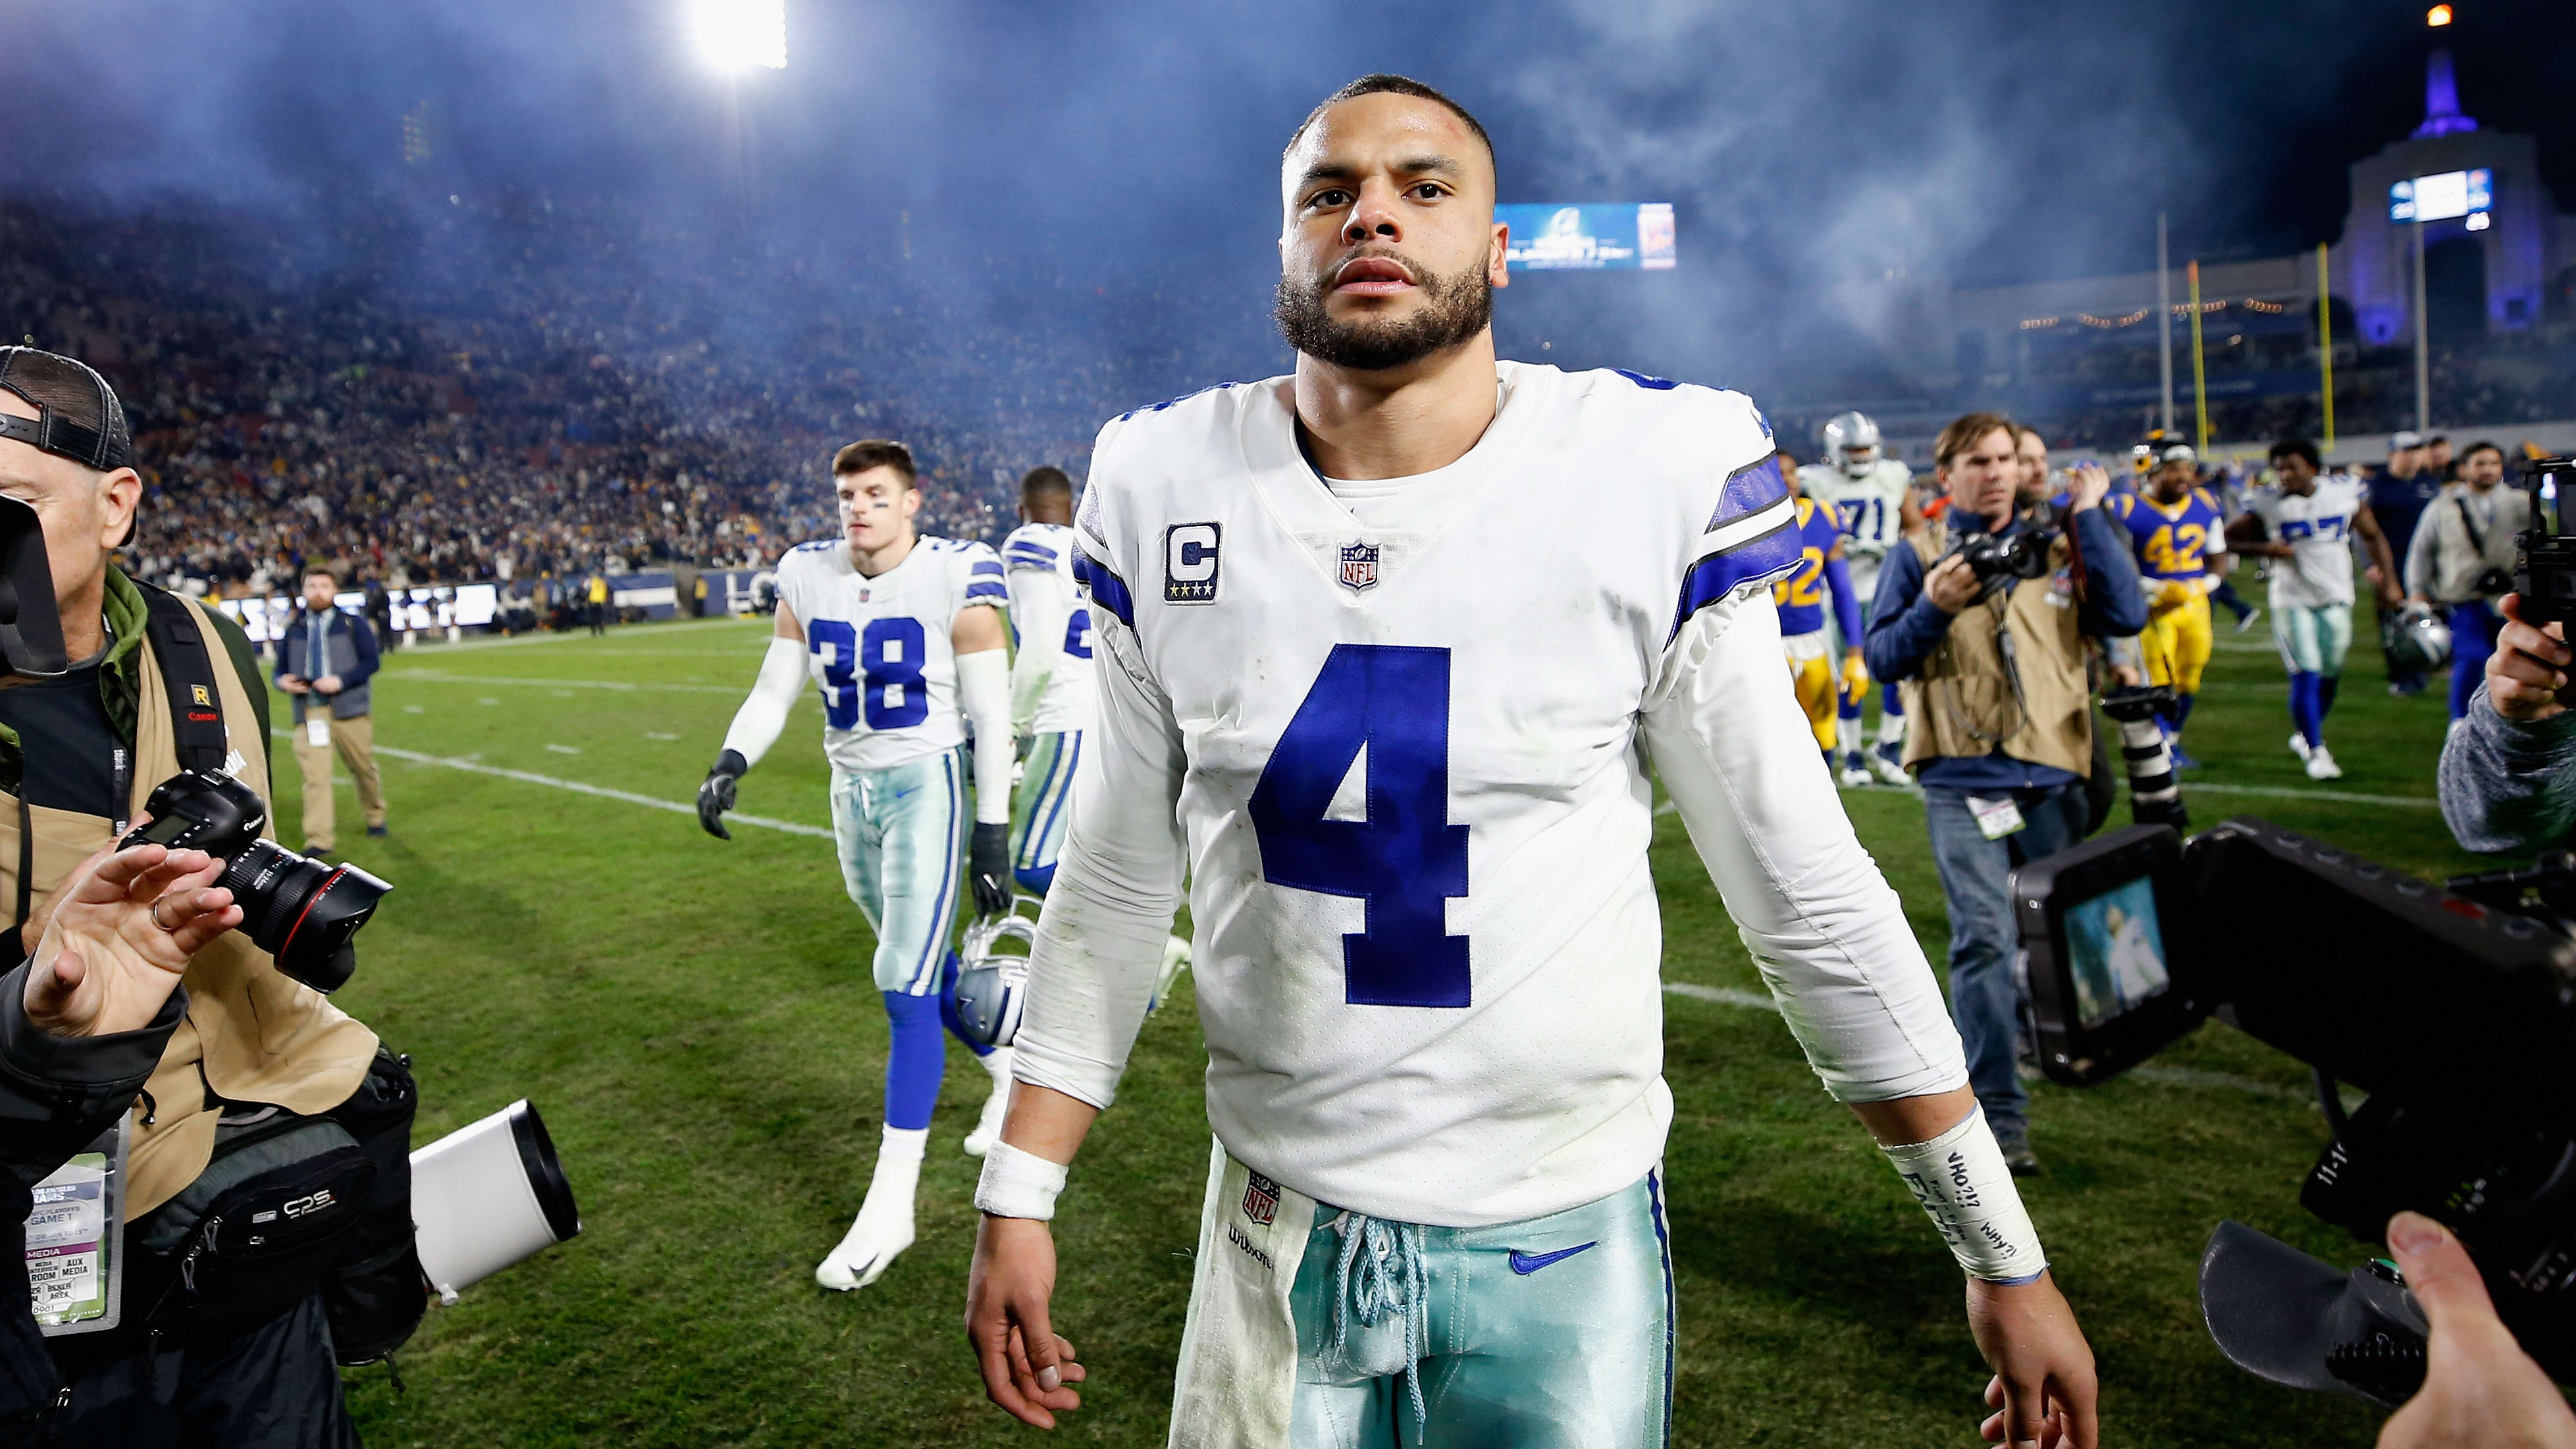 LOS ANGELES, CA - JANUARY 12:  Dak Prescott #4 of the Dallas Cowboys walks off the field after the NFC Divisional Playoff game against the Los Angeles Lakers at Los Angeles Memorial Coliseum on January 12, 2019 in Los Angeles, California. The Rams defeated the Cowboys 30-22.  (Photo by Sean M. Haffey/Getty Images)